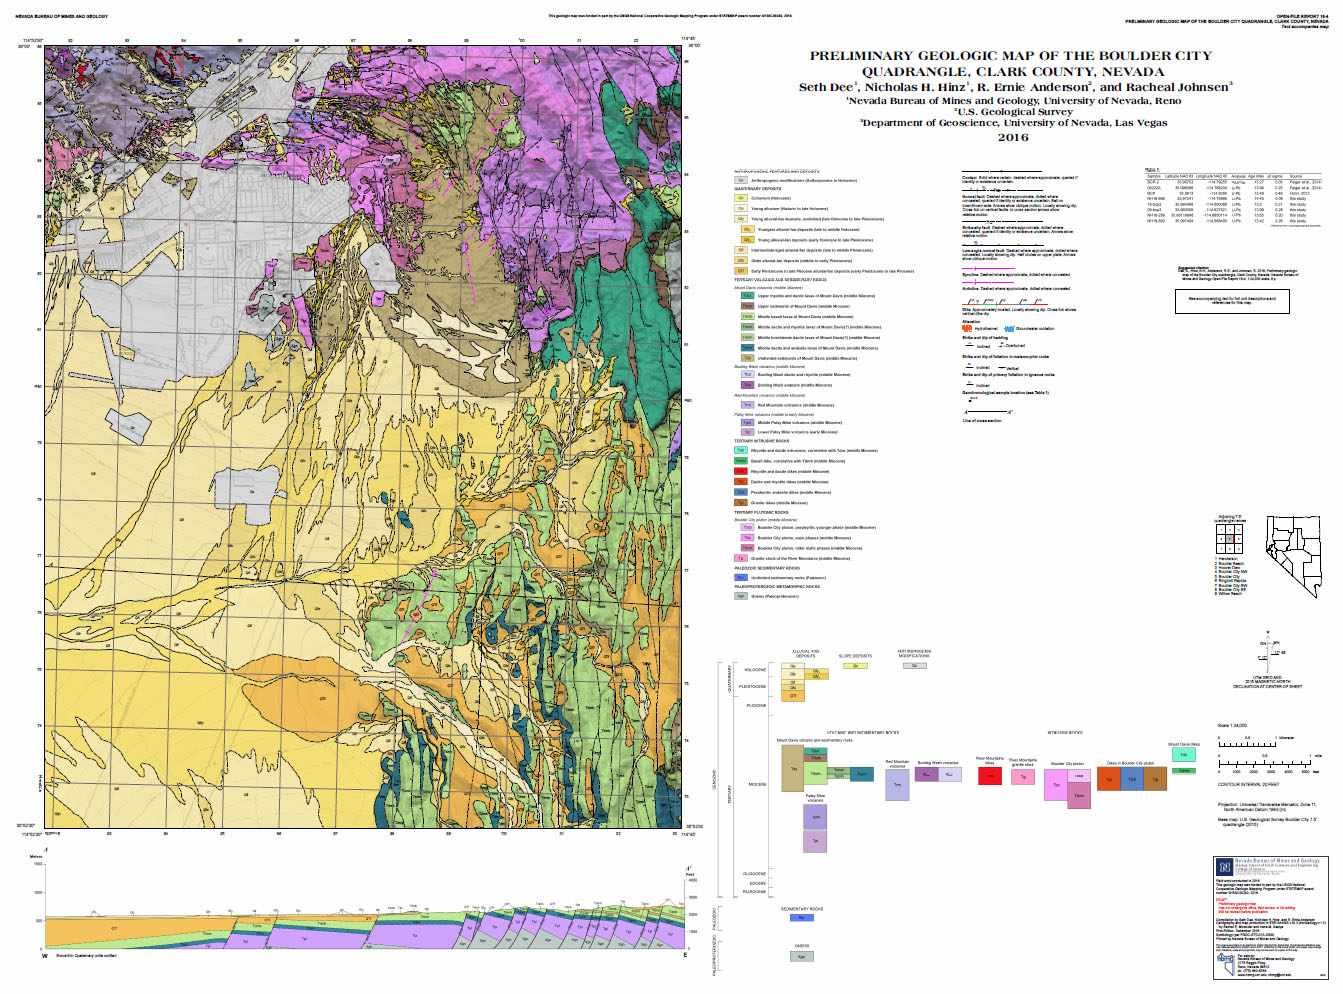 New Geologic Maps in Clark County: Boulder City and Apex ... on las vegas valley map, william clark map, clark island map, clark school map, clark sd map, north las vegas map, clark colorado map, las vegas township map, nevada map, sandy valley map, ohio map,